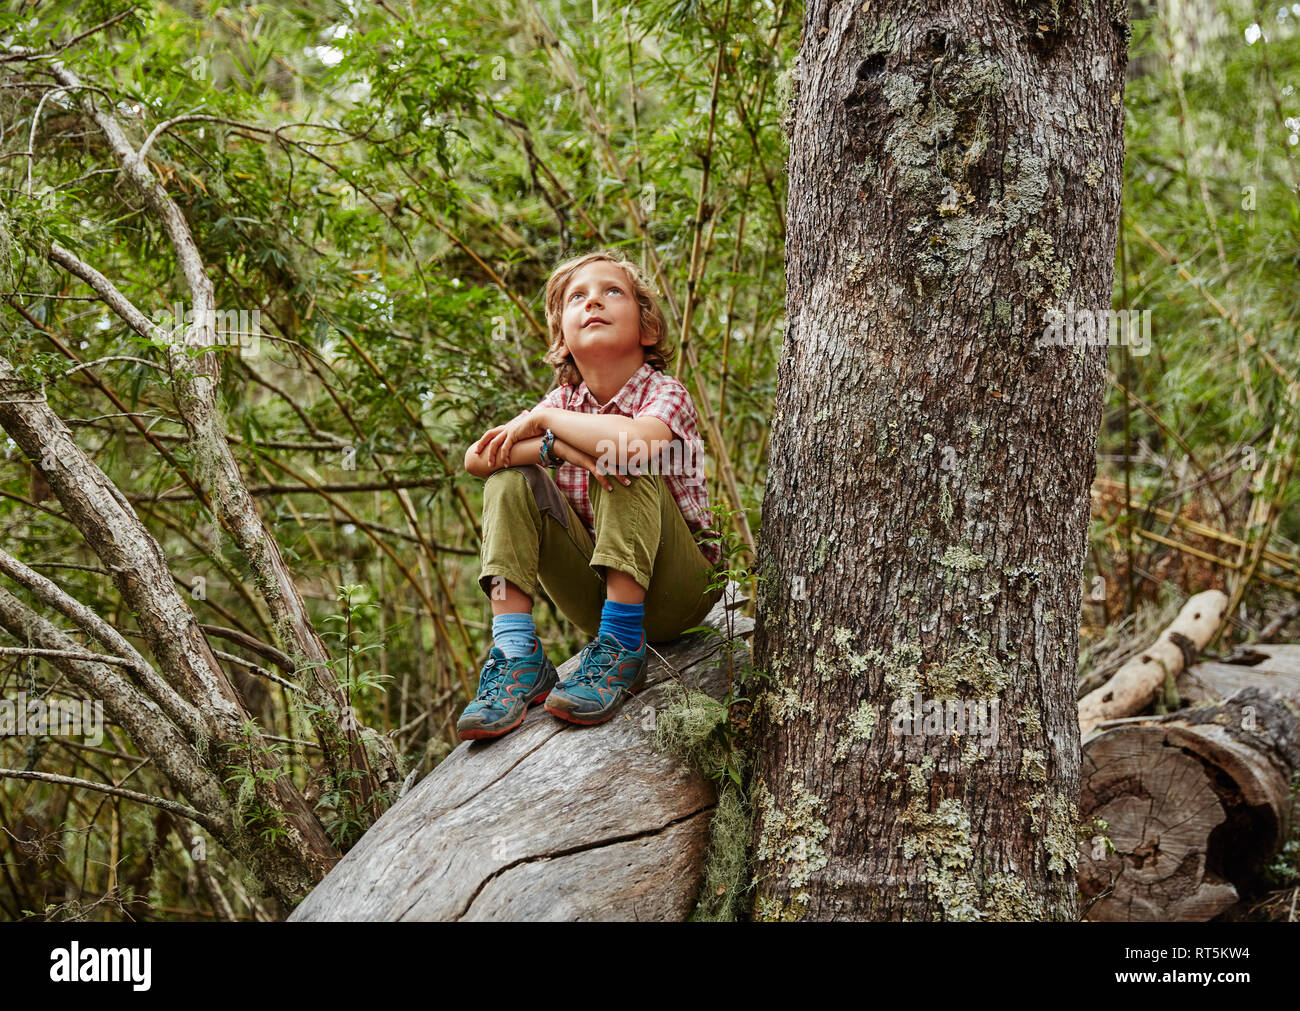 Chile, Puren, Nahuelbuta National Park, boy sitting on a tree in forest looking up - Stock Image